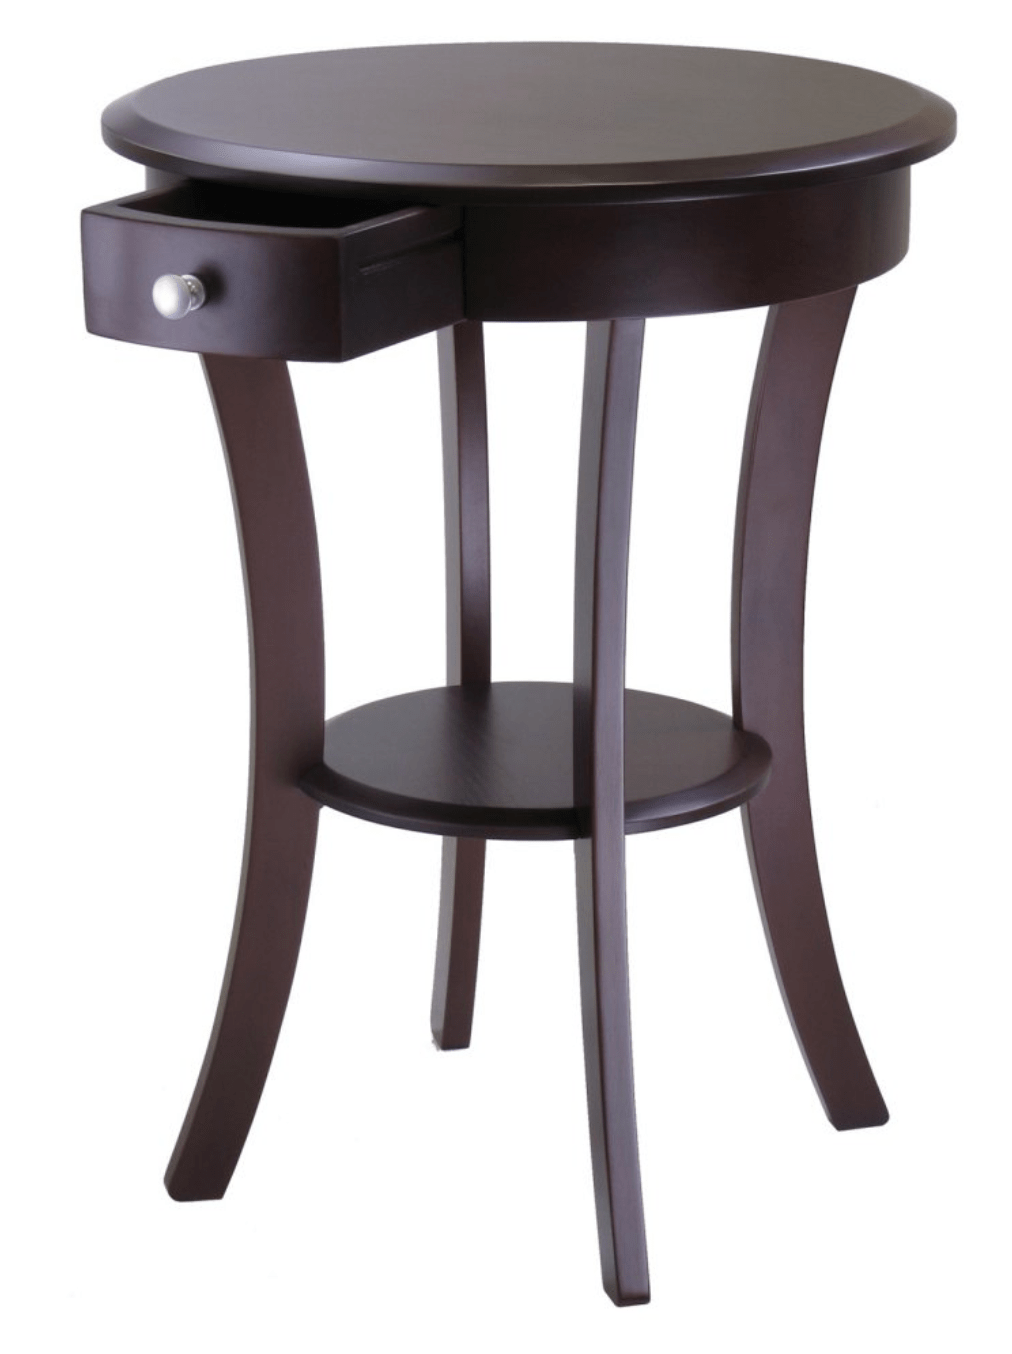 lovely small accent table for round wood min modern pedestal contemporary the bedroom target coffee threshold console narrow hallway cabinet outdoor shoe storage pier one counter